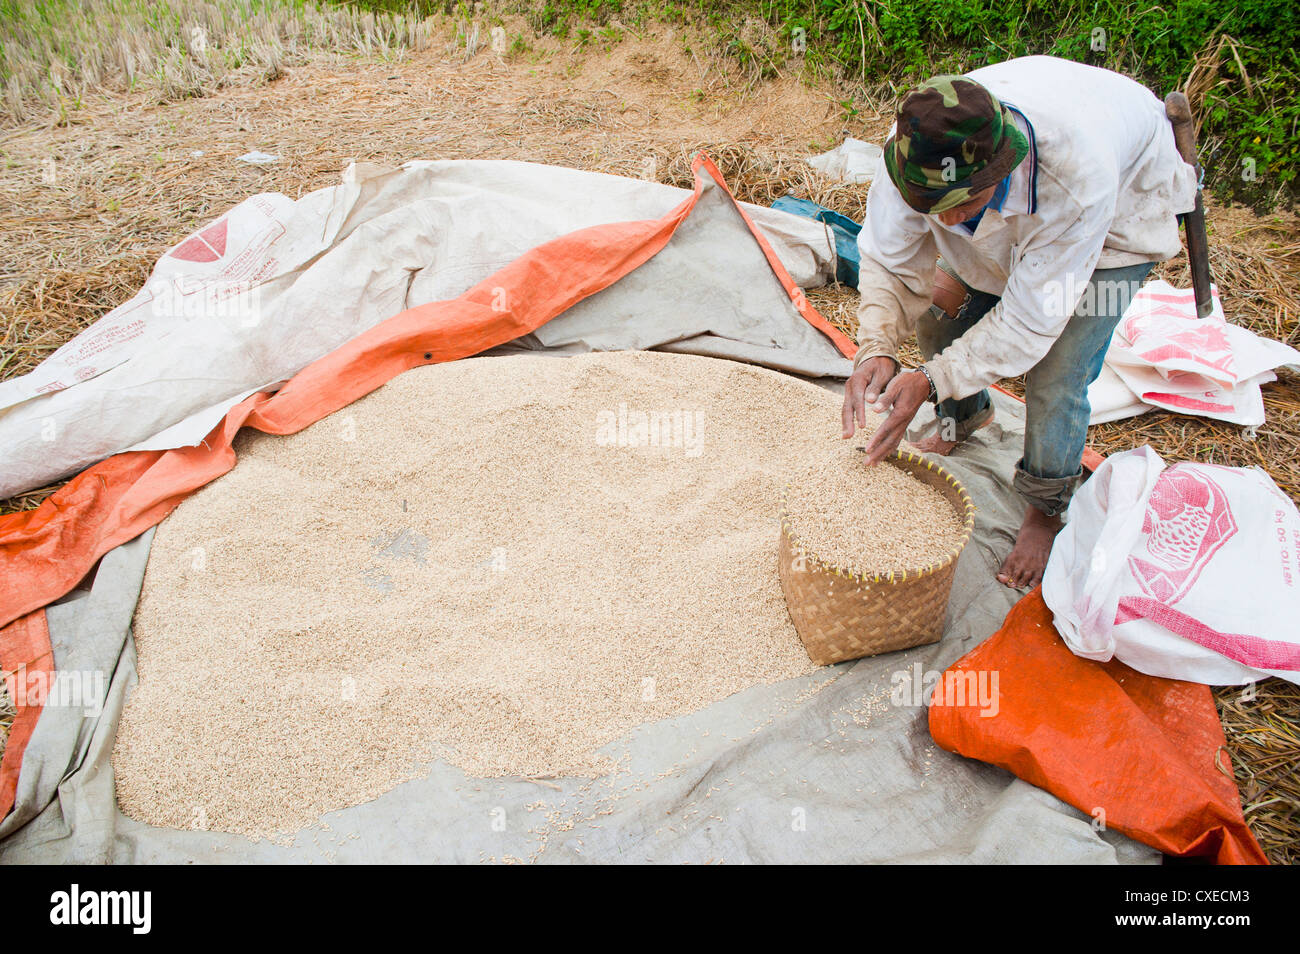 Rice paddy field worker sorting, collecting and drying out rice, Bandung, Java, Indonesia, Southeast Asia, Asia - Stock Image